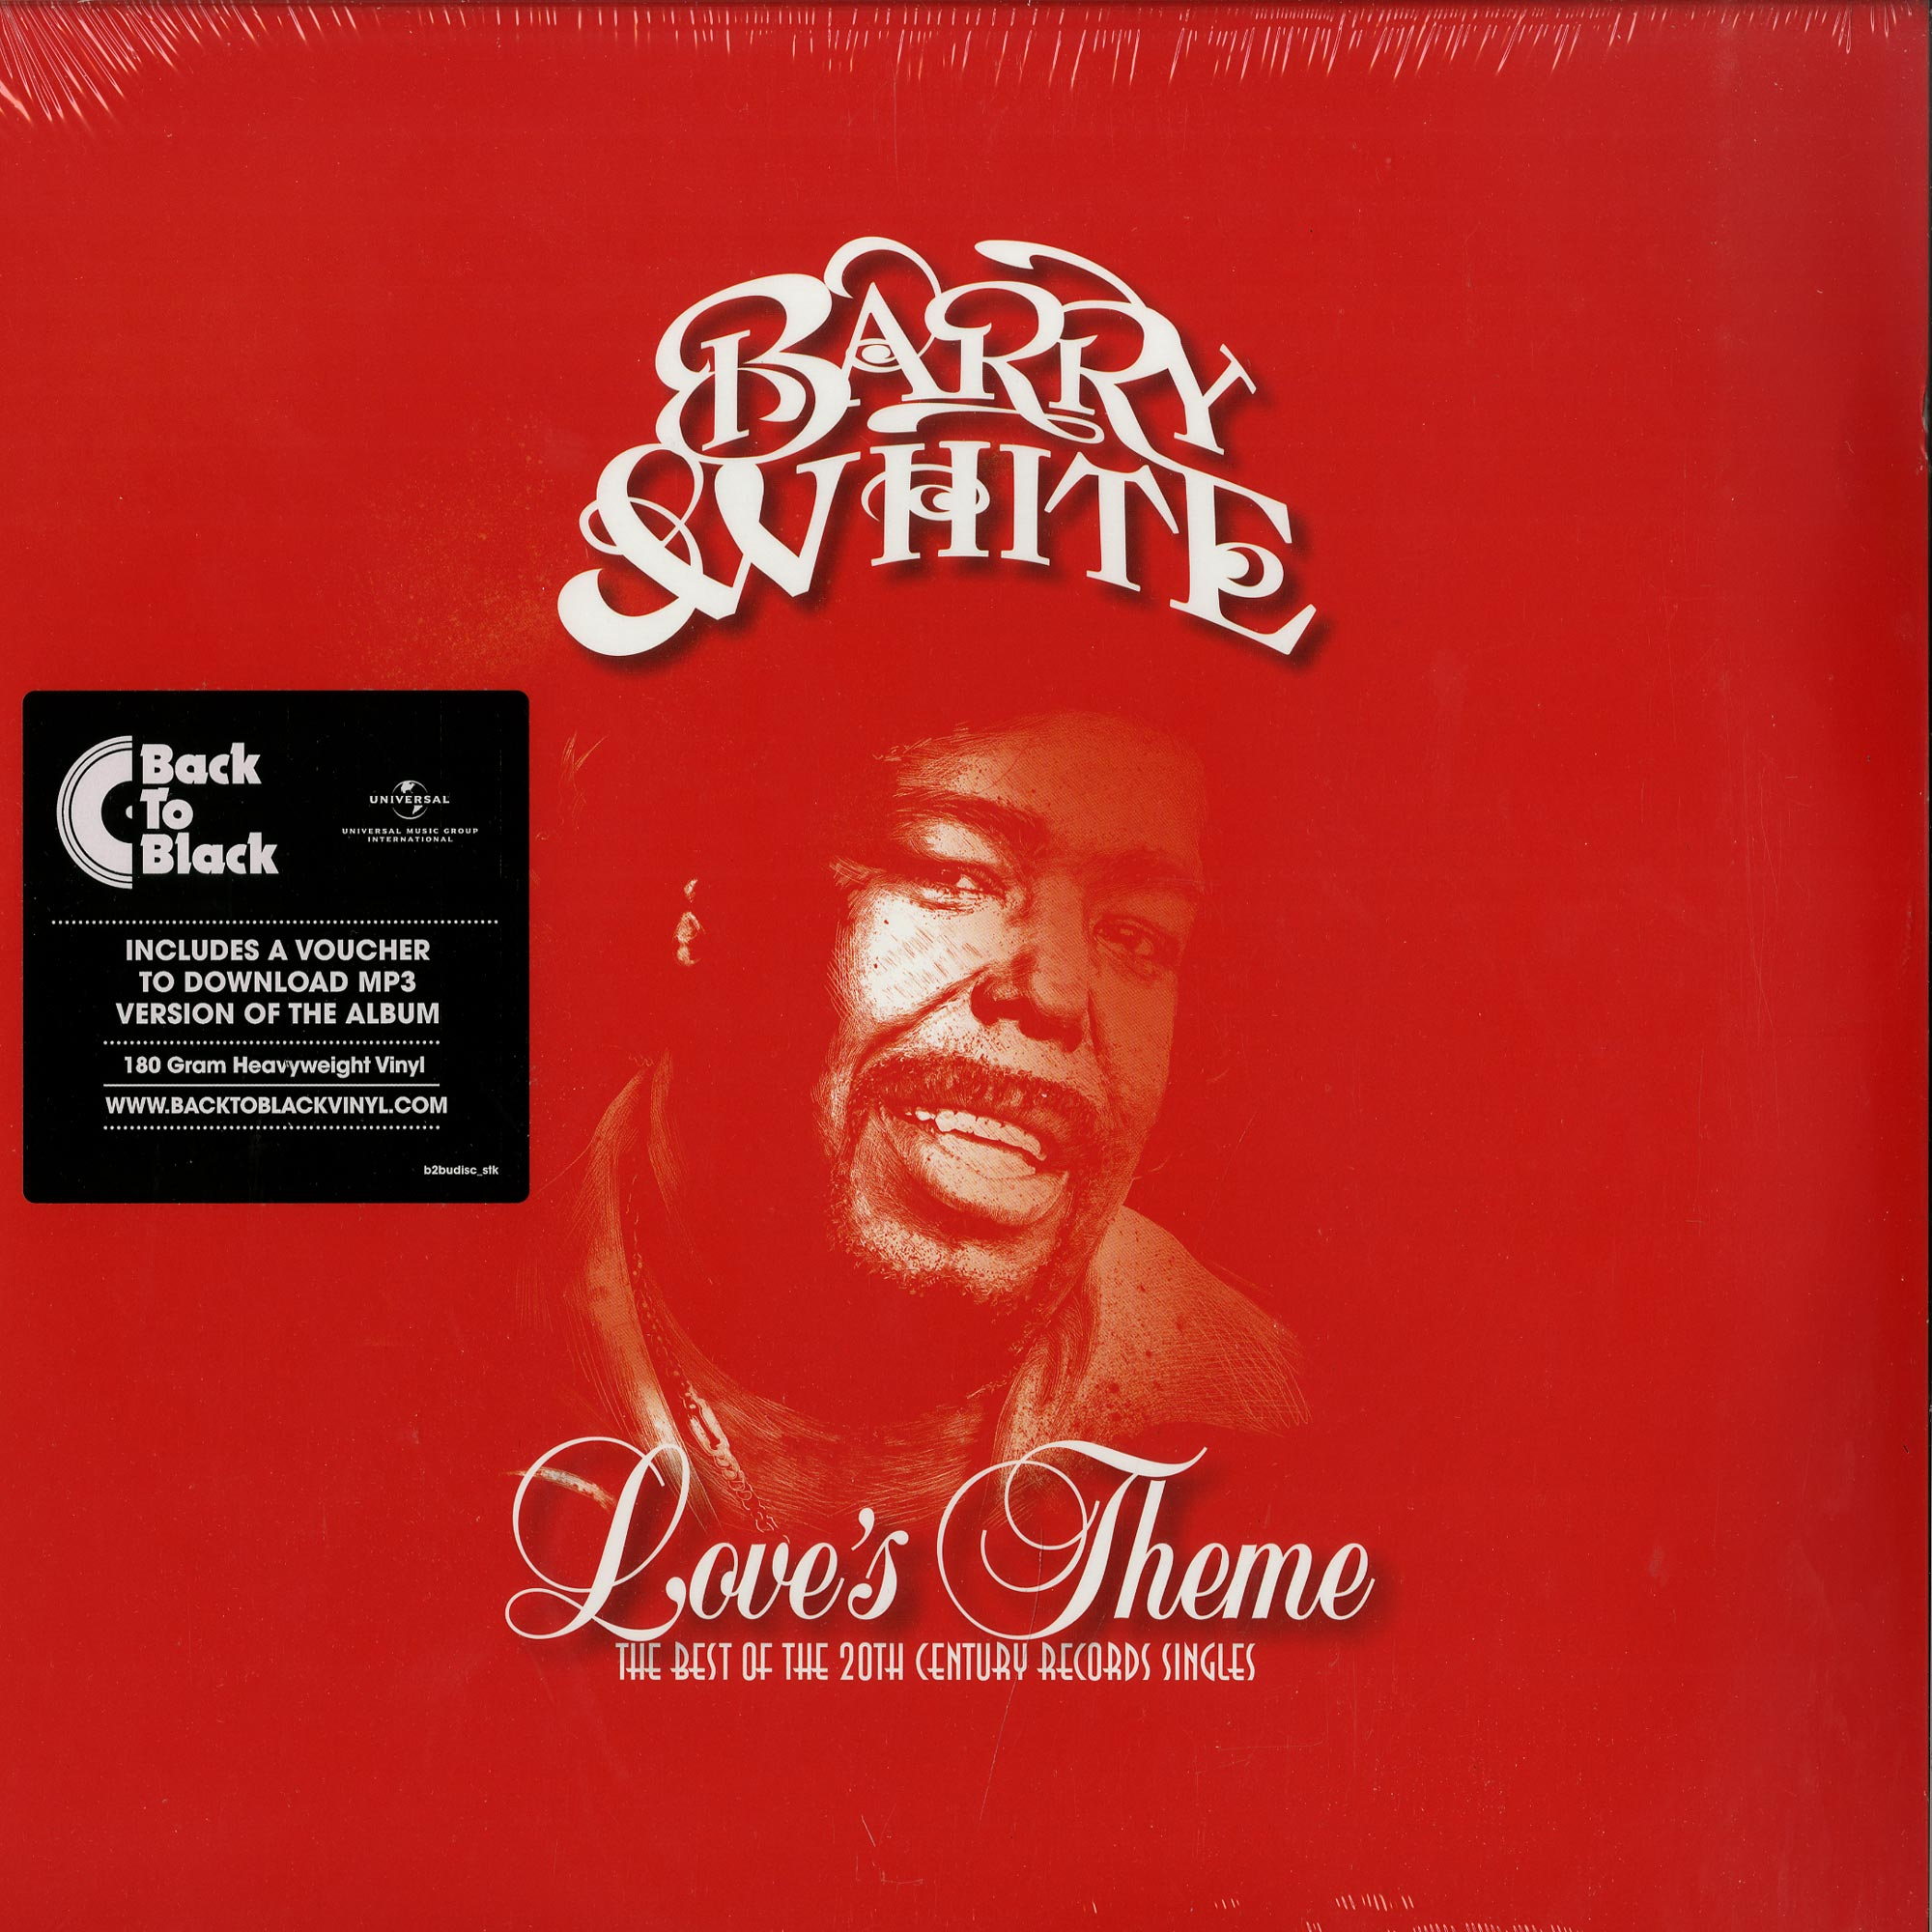 Barry White Loves Theme The Best Of The 20th Century Records